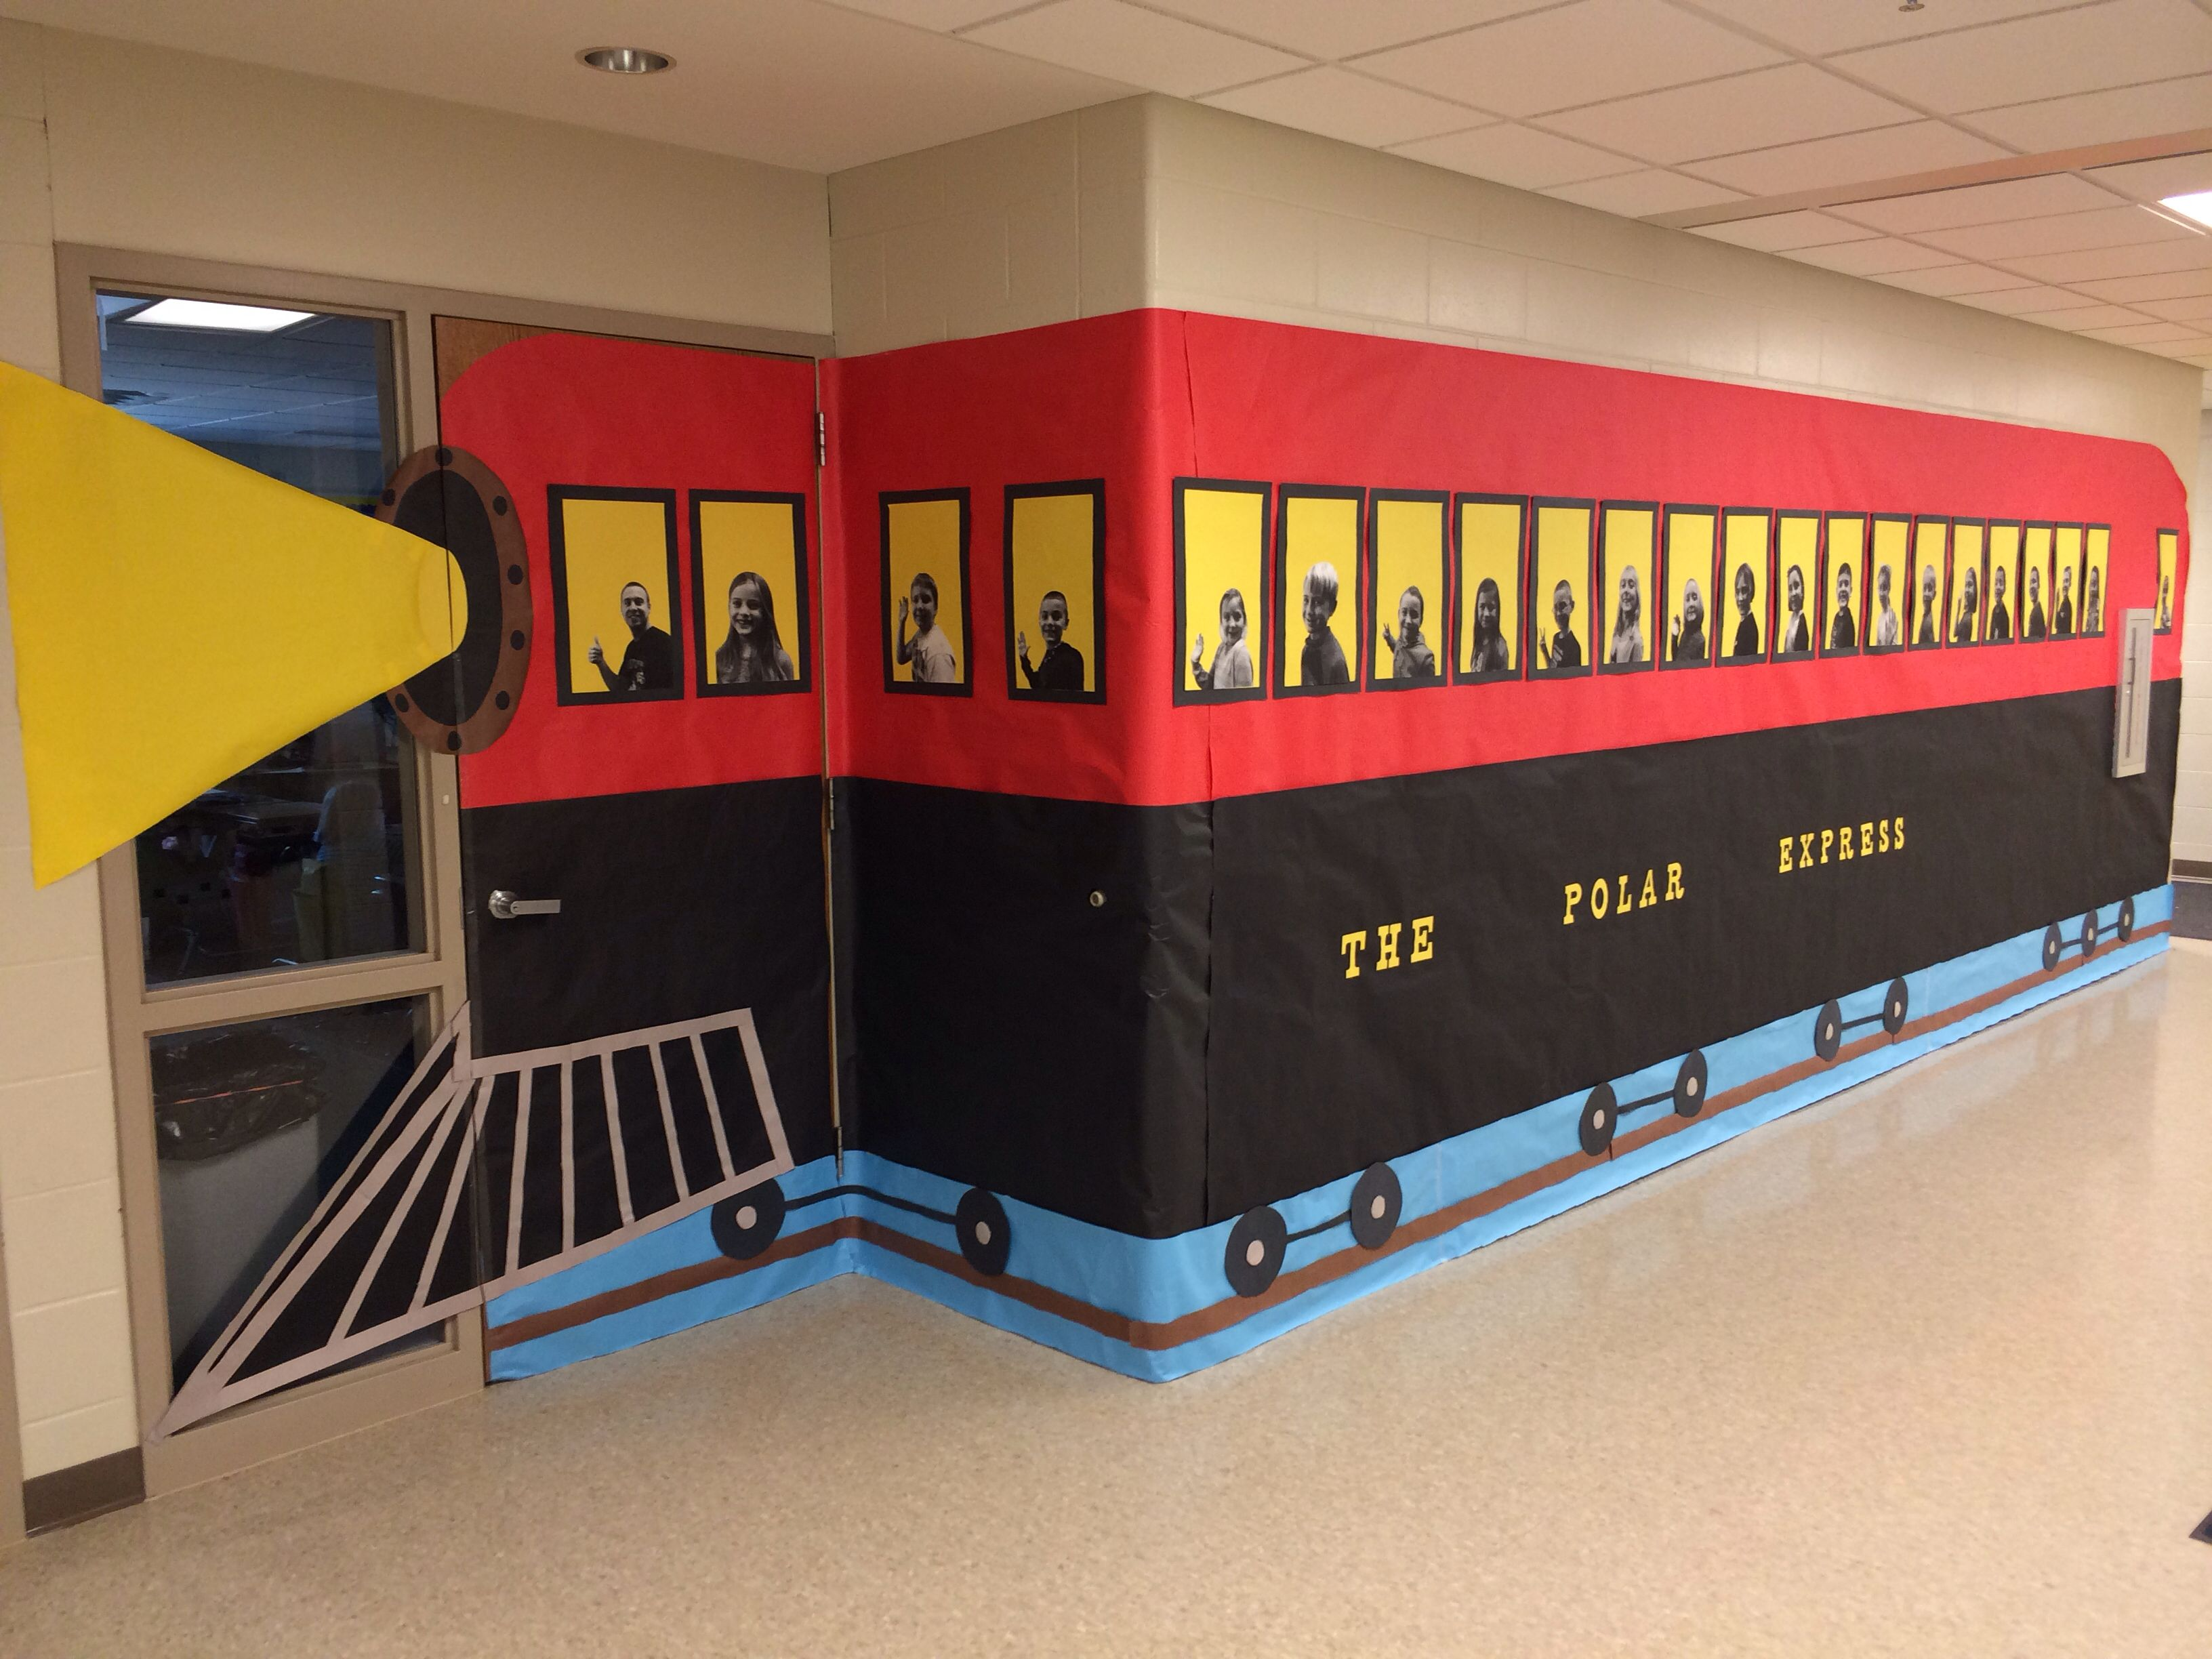 I did this Polar Express for the Christmas door decoration contest